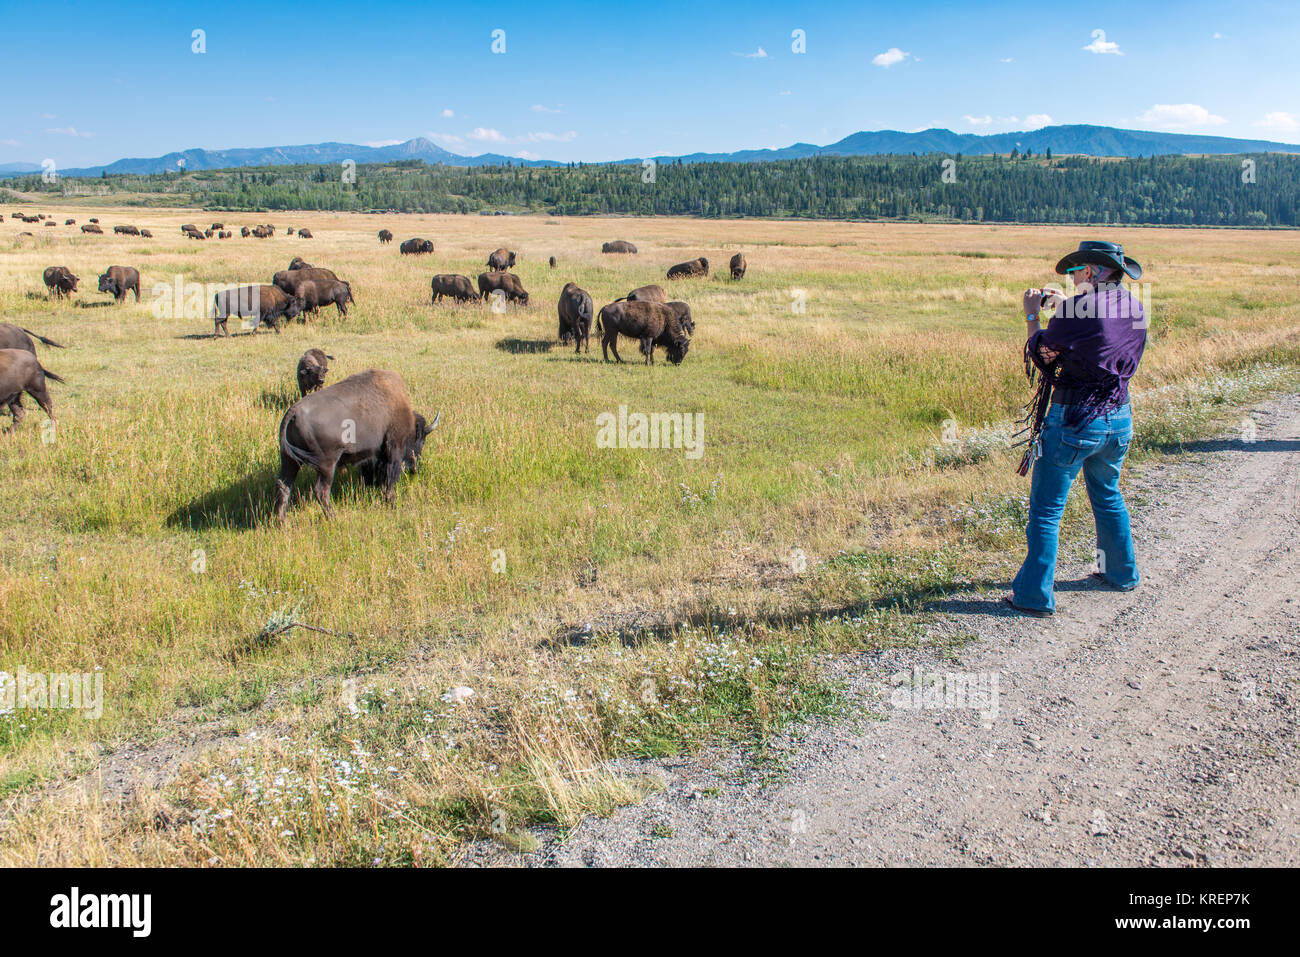 Woman in a cowboy hat uses cellphone to take photo of a herd of